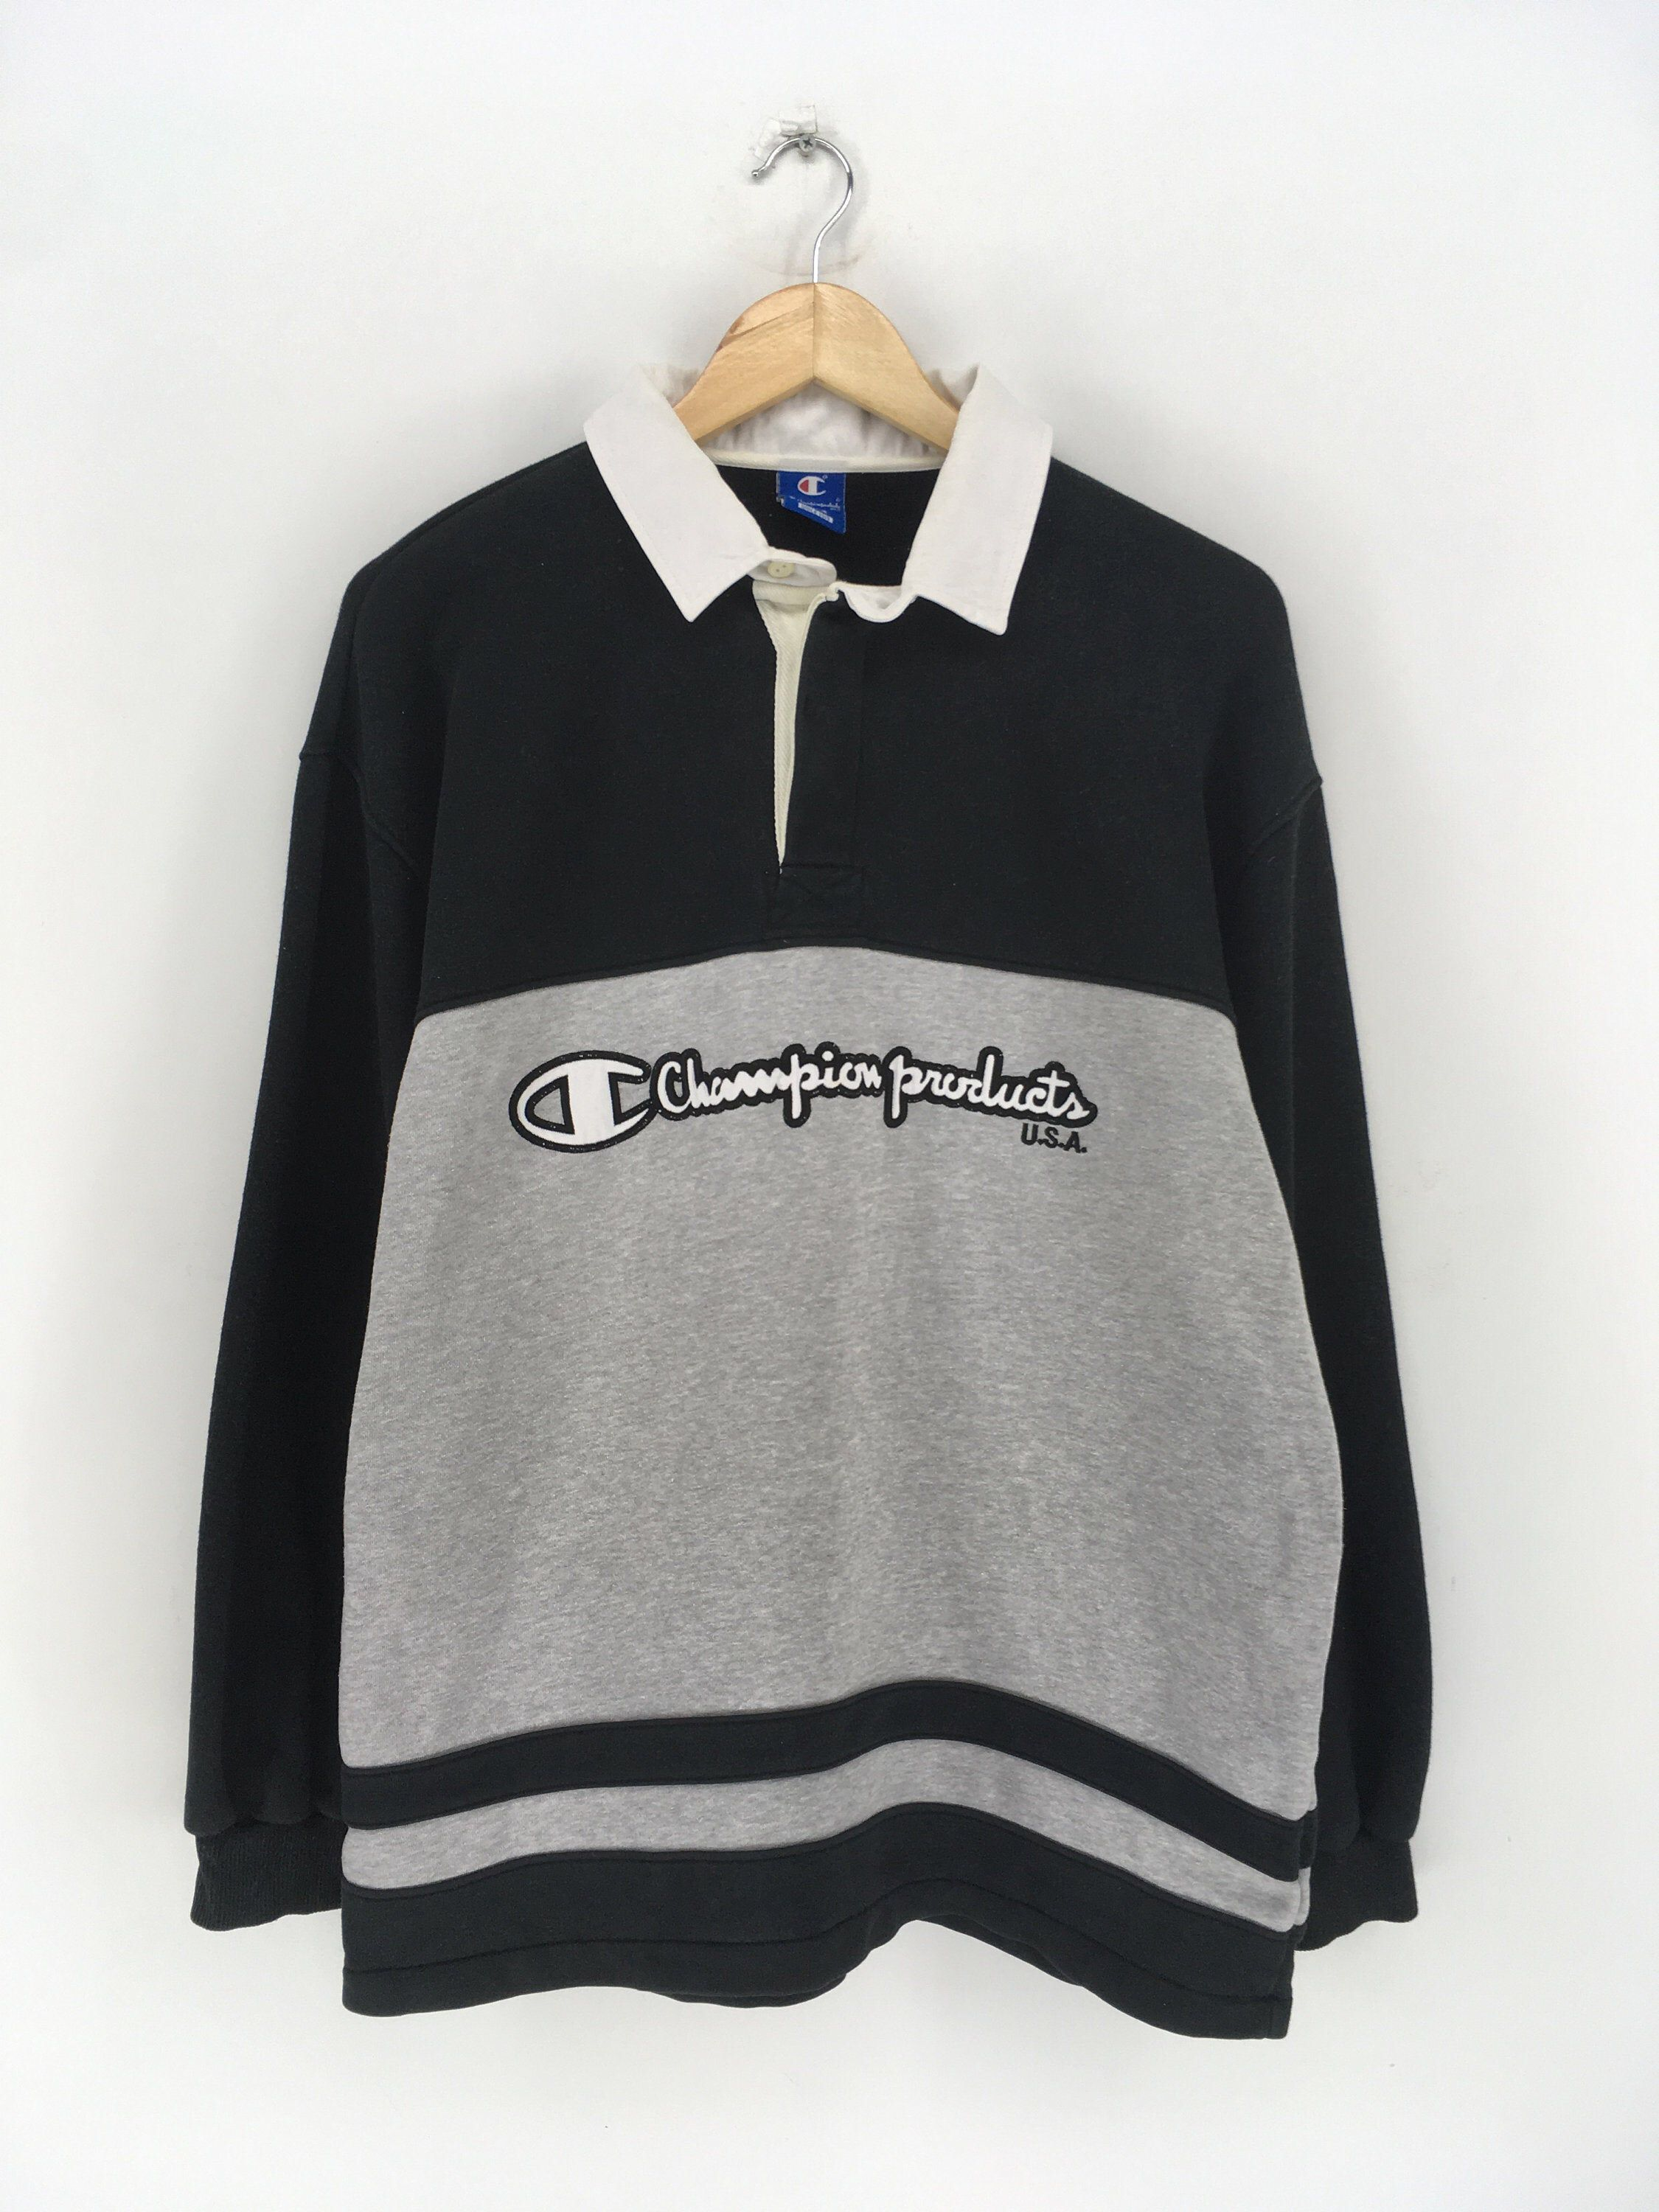 Excited To Share The Latest Addition To My Etsy Shop Champion Polos Shirt Large Vintage 1990s Polo Shirt Outfits Vintage Nike Sweatshirt Striped Sweatshirts [ 3000 x 2250 Pixel ]